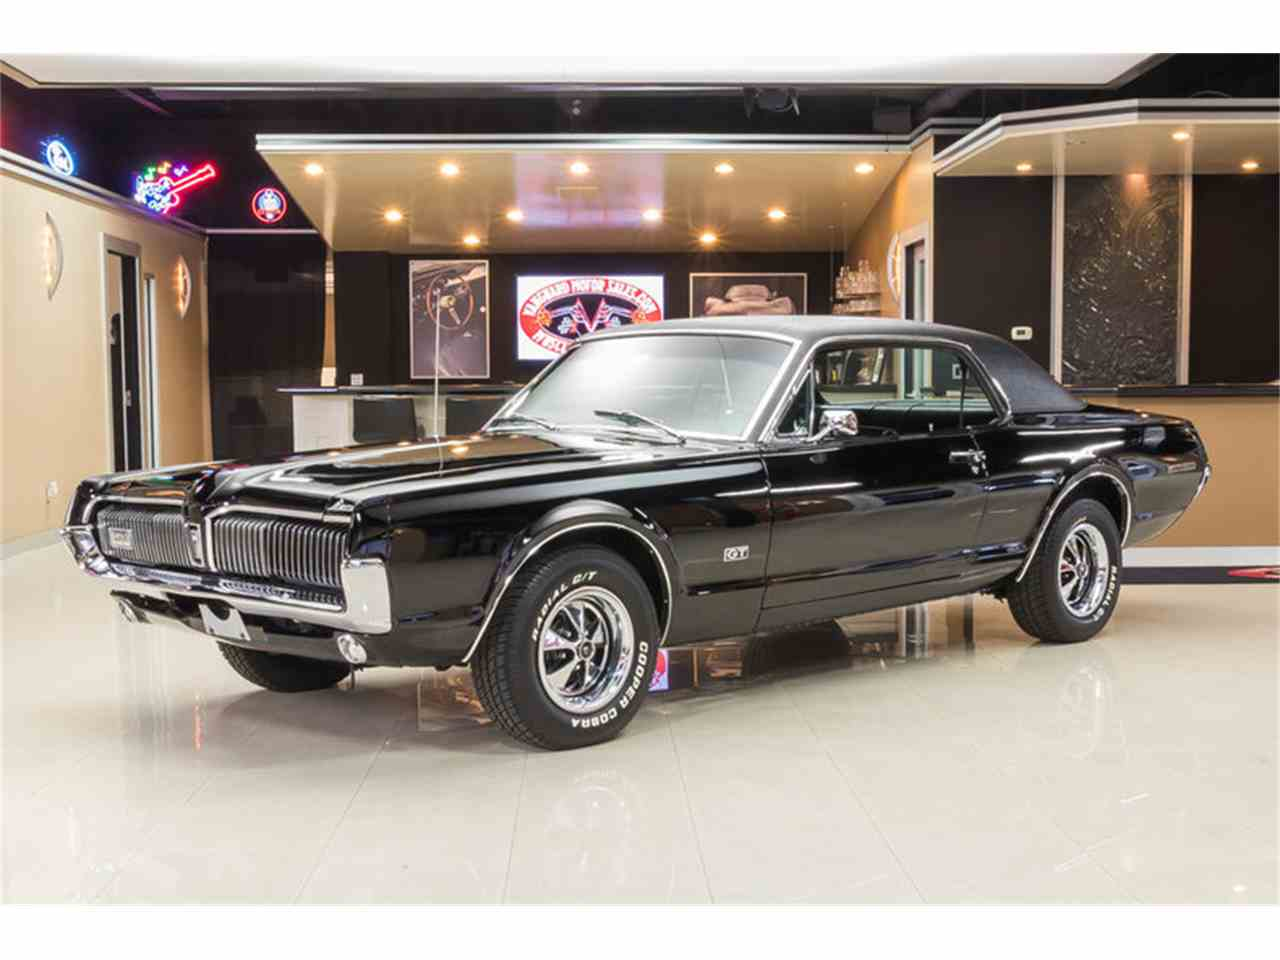 1967 mercury cougar gt s code for sale classiccars cc 977206 large picture of 67 cougar gt s code ky0m publicscrutiny Image collections